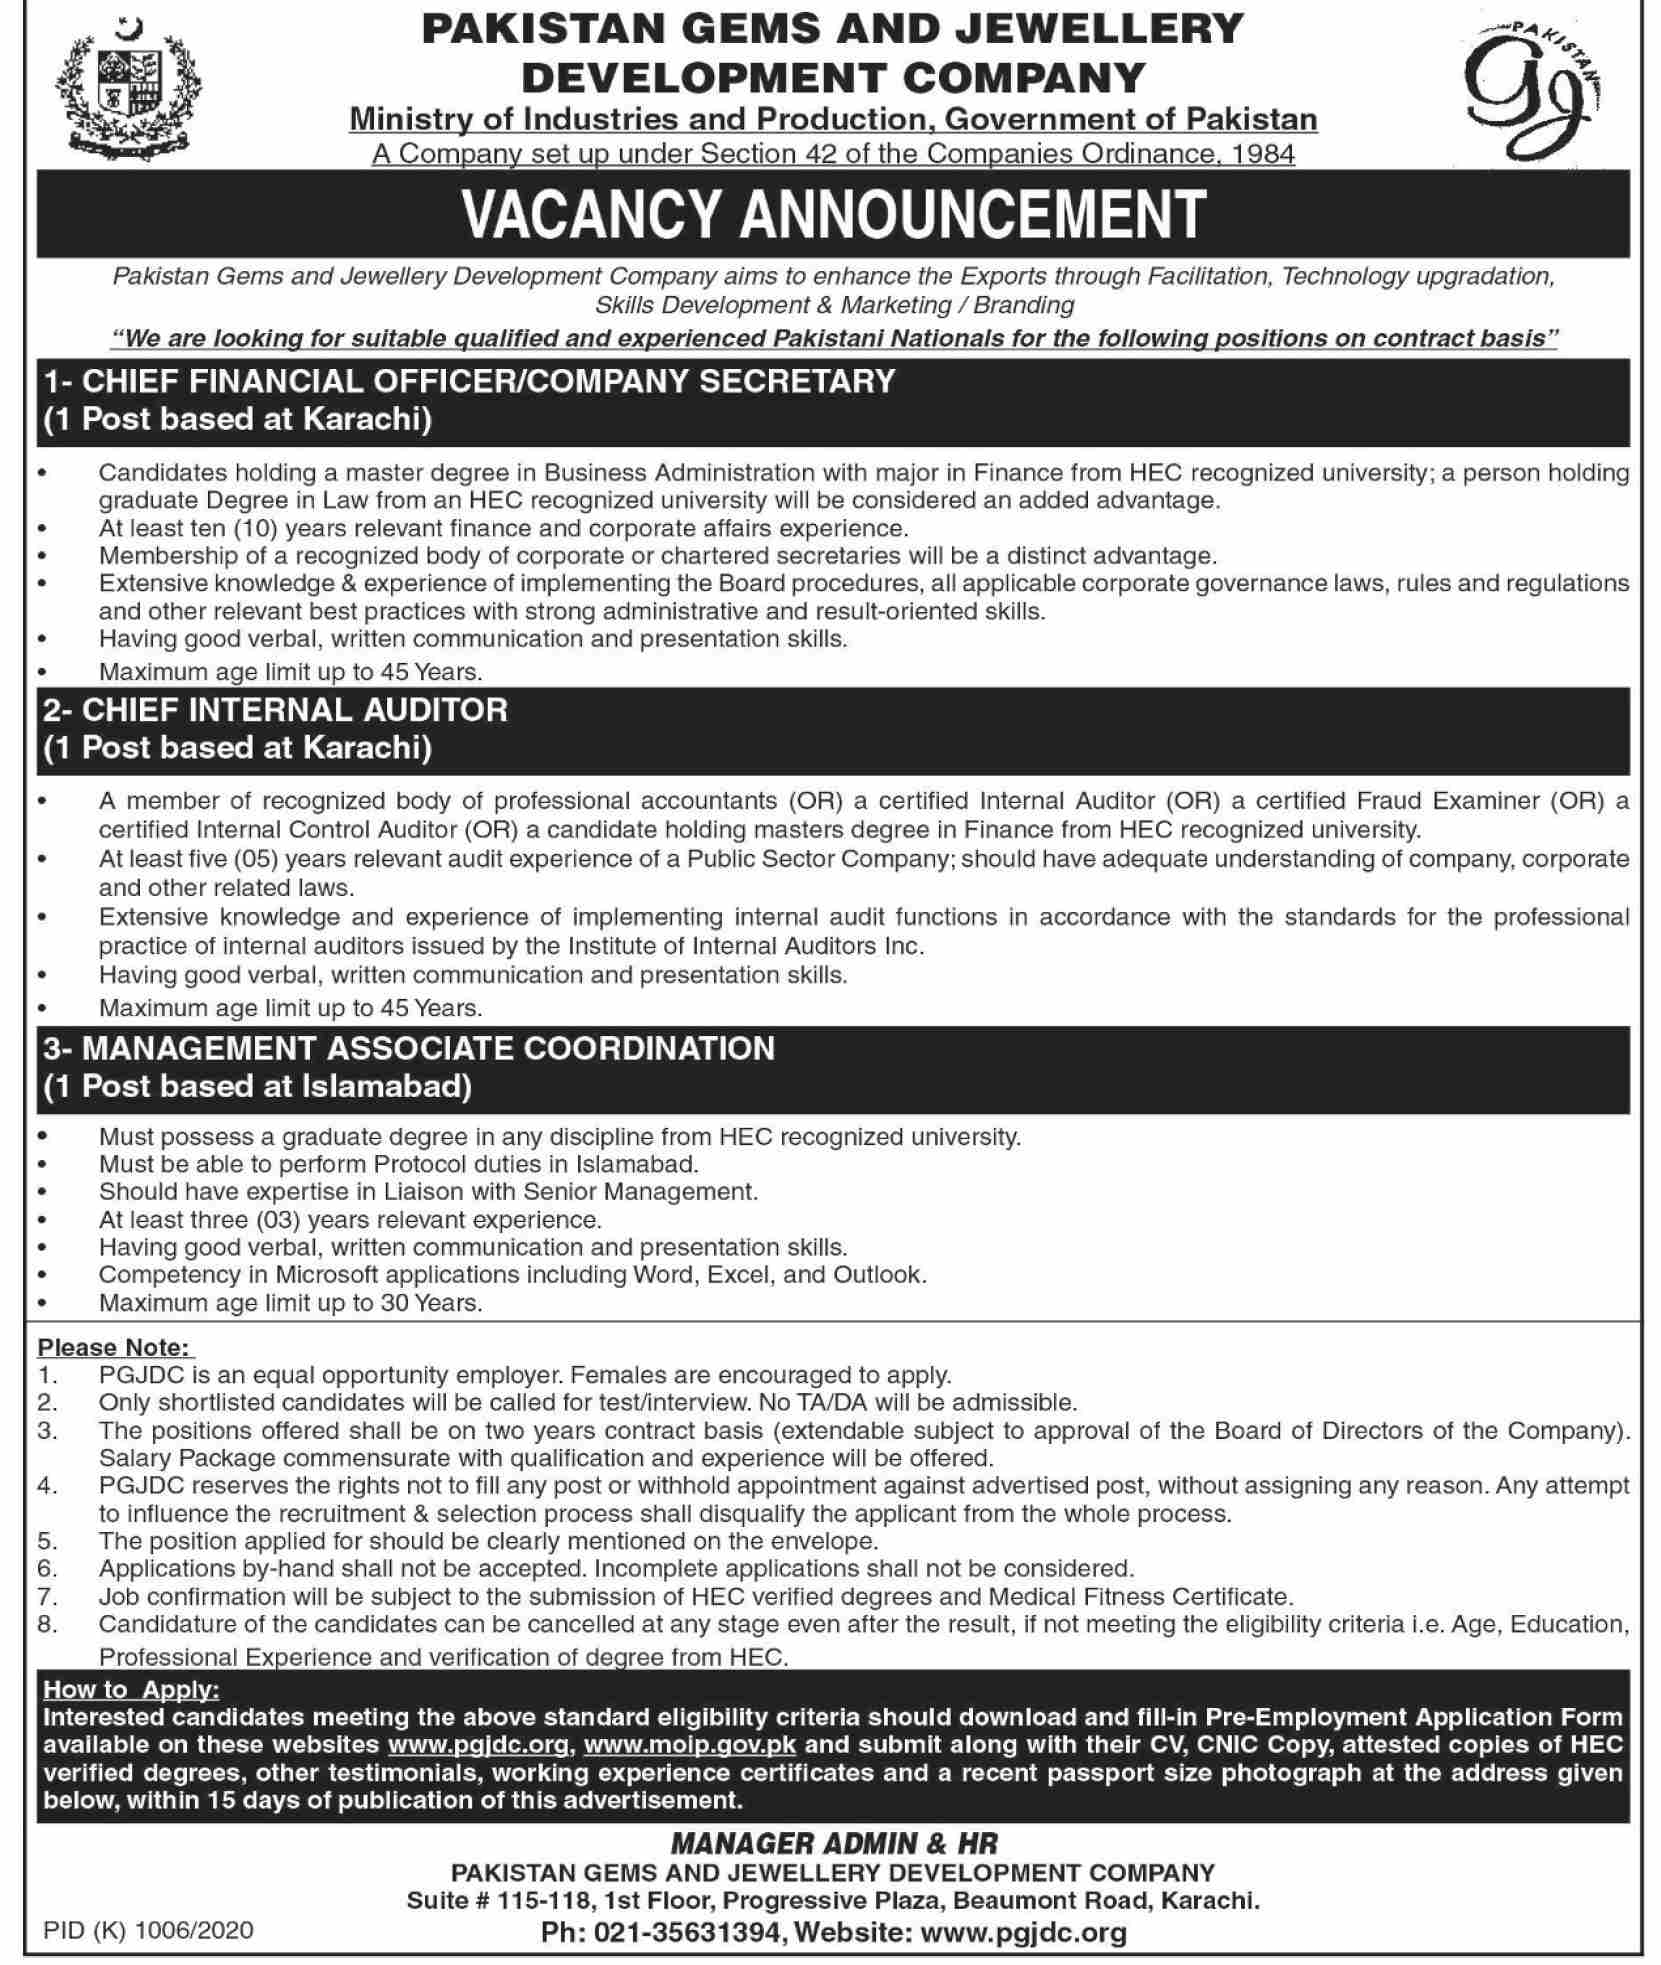 Pakistan Gems and Jewellery Development Company Job Advertisement in Pakistan - Apply Now - www.pgjdc.org - www.moip.gov.pk